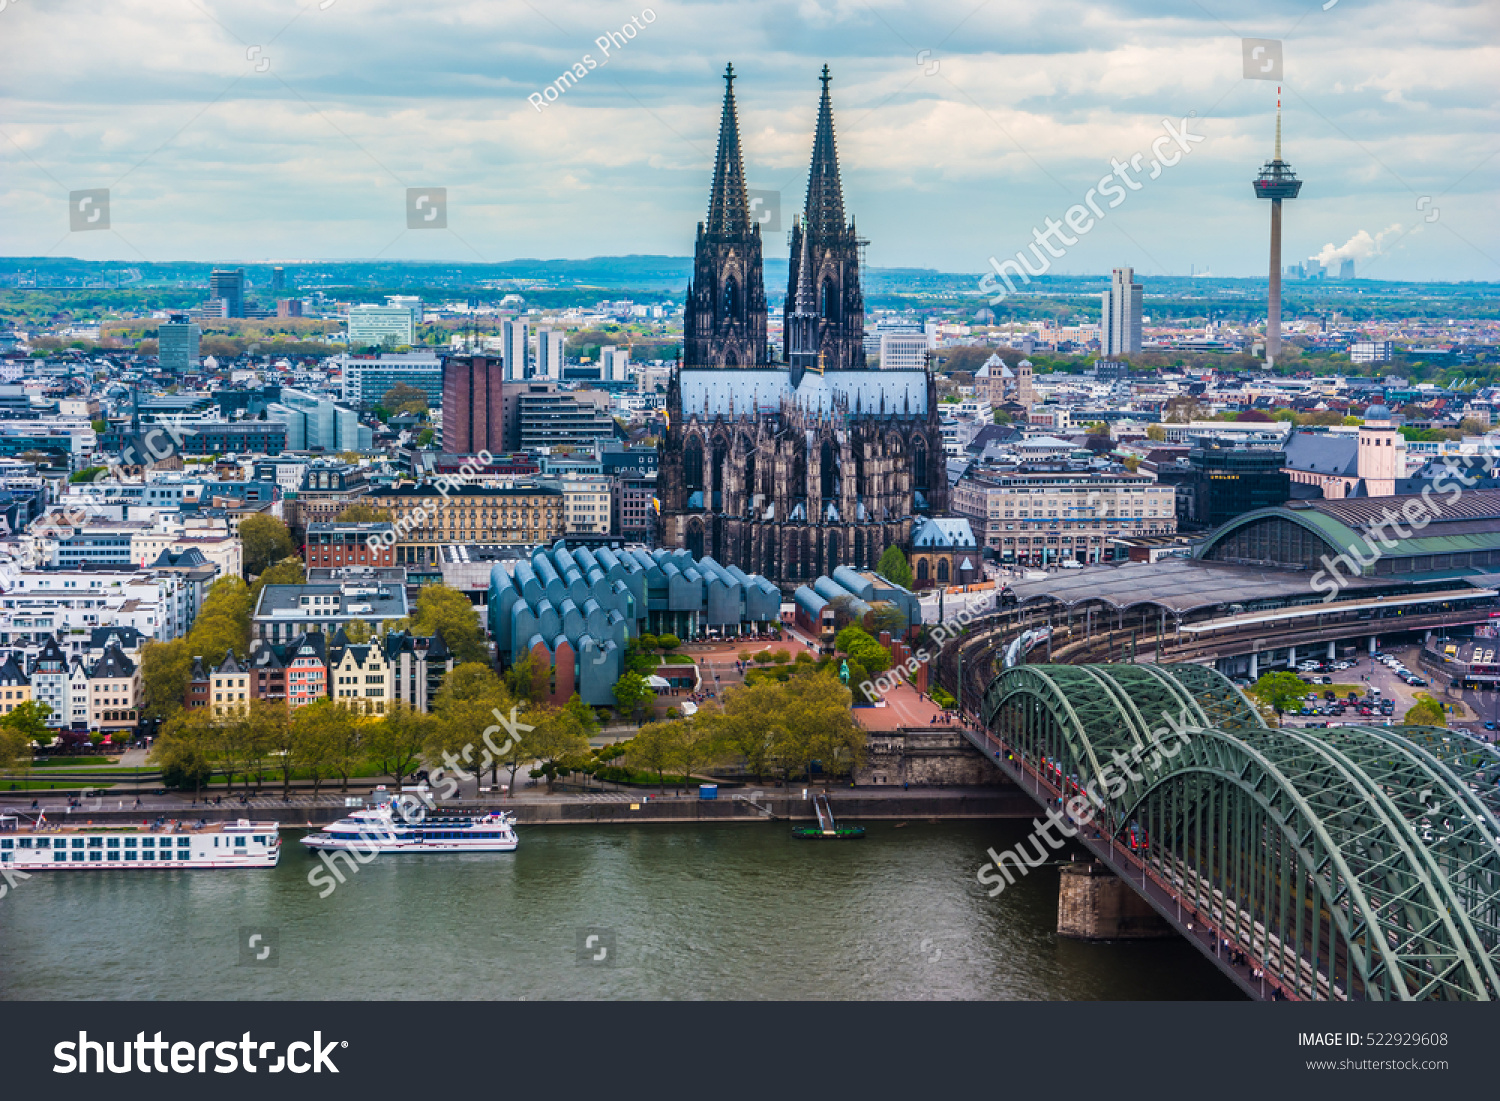 aerial view cologne germany beautiful travel stock photo 522929608 shutterstock. Black Bedroom Furniture Sets. Home Design Ideas